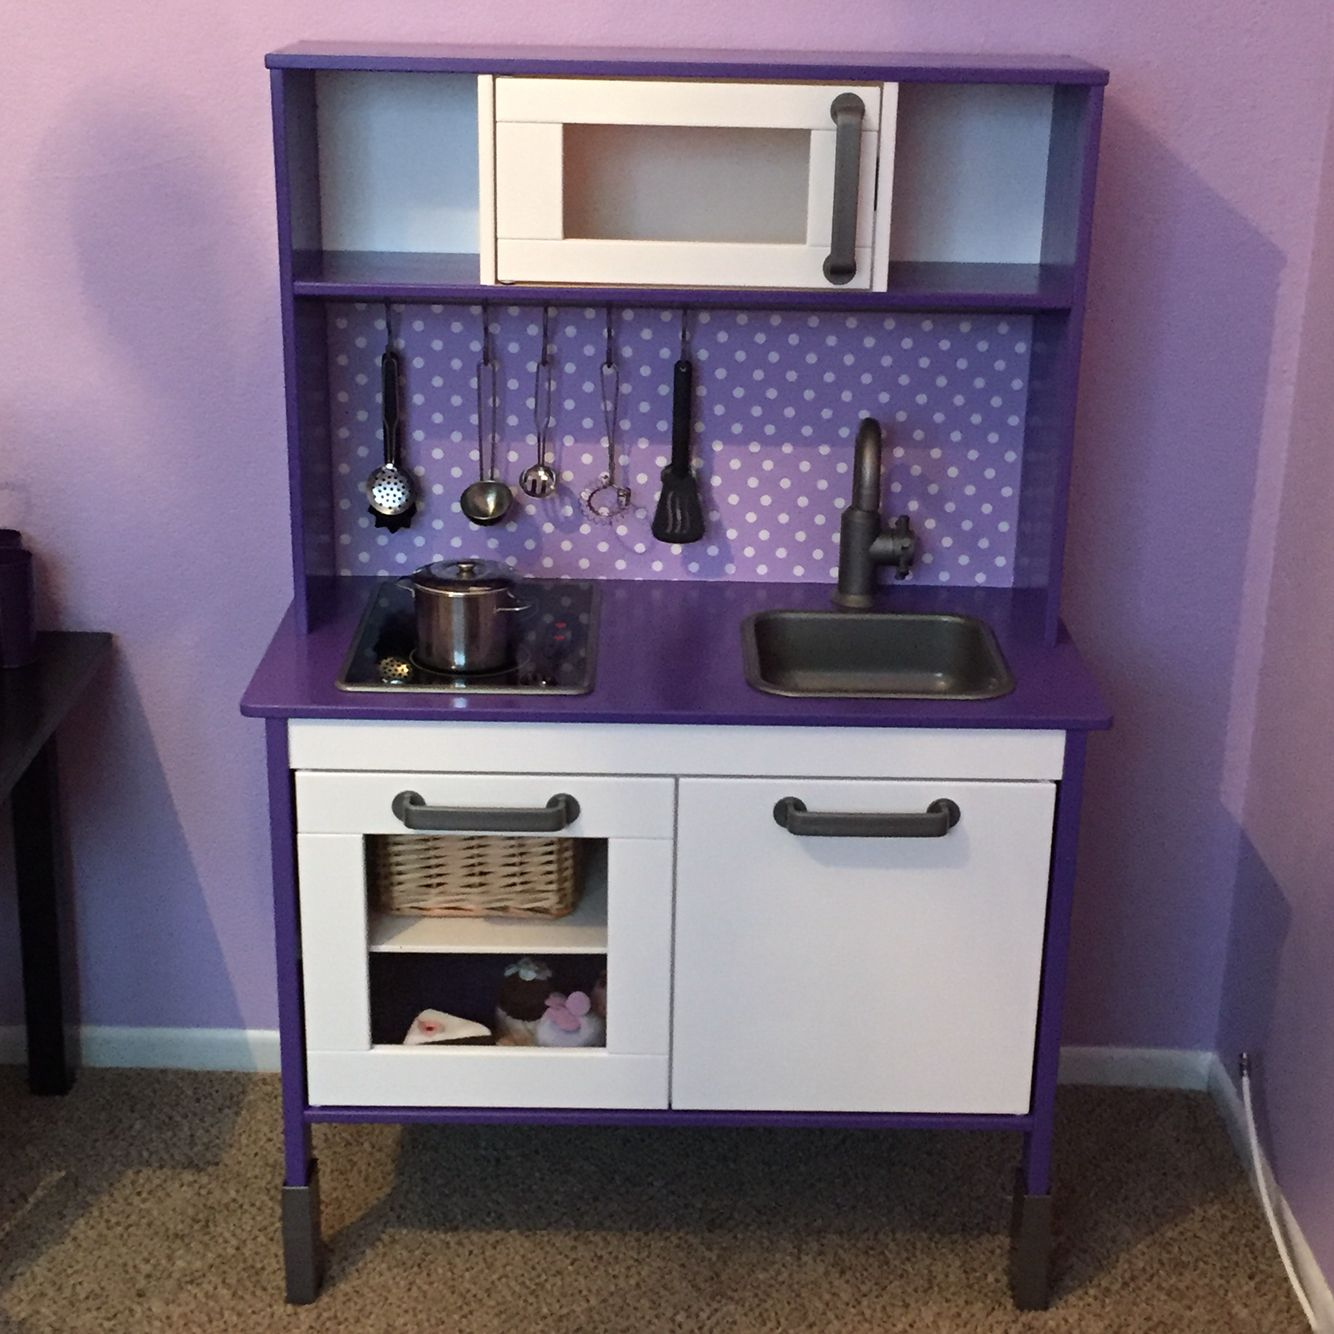 IKEA play kitchen (With images) Ikea play kitchen